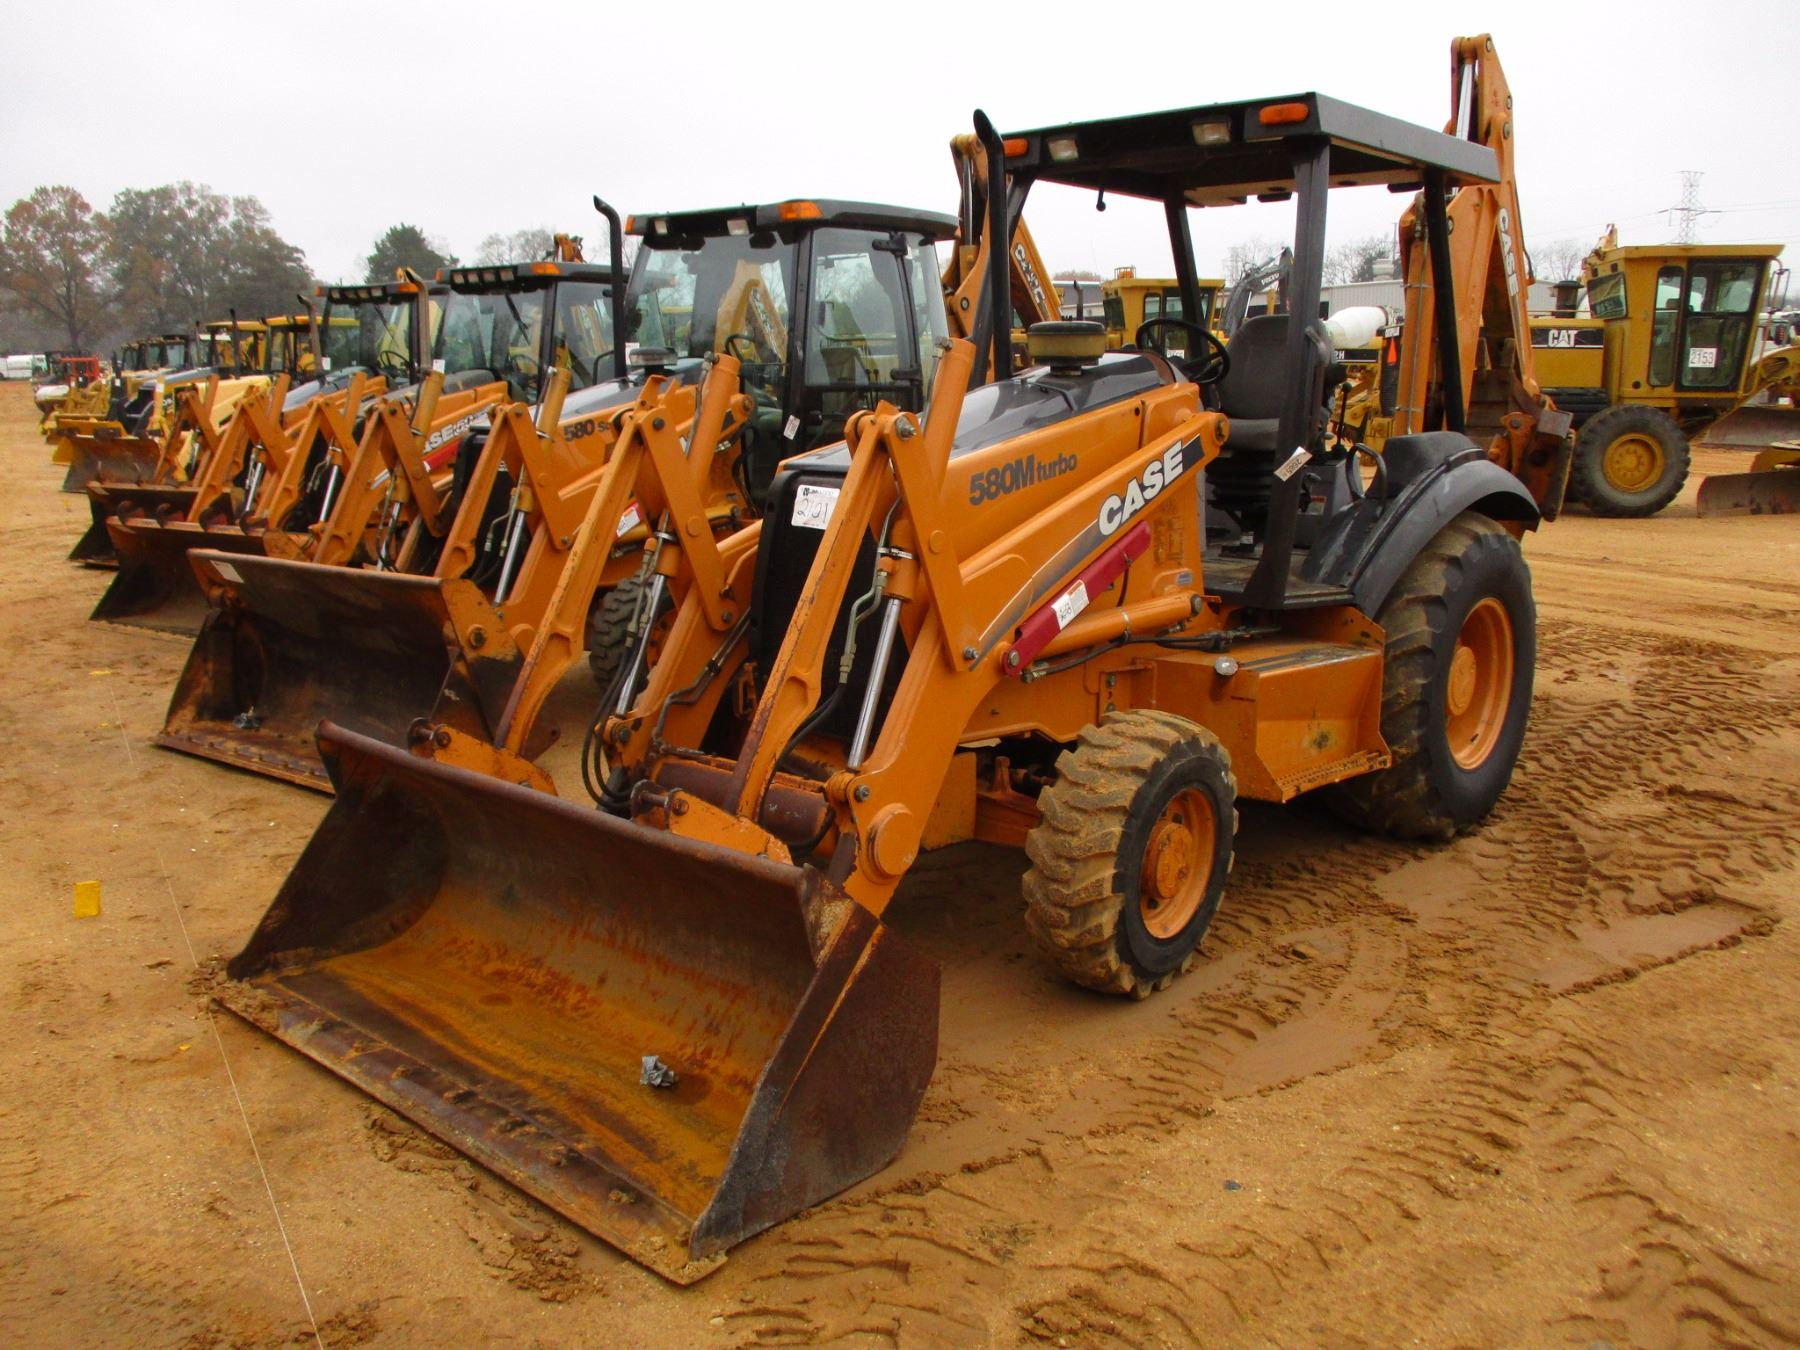 hight resolution of image 1 2003 case 580m loader backhoe vin sn jjg0309088 4x4